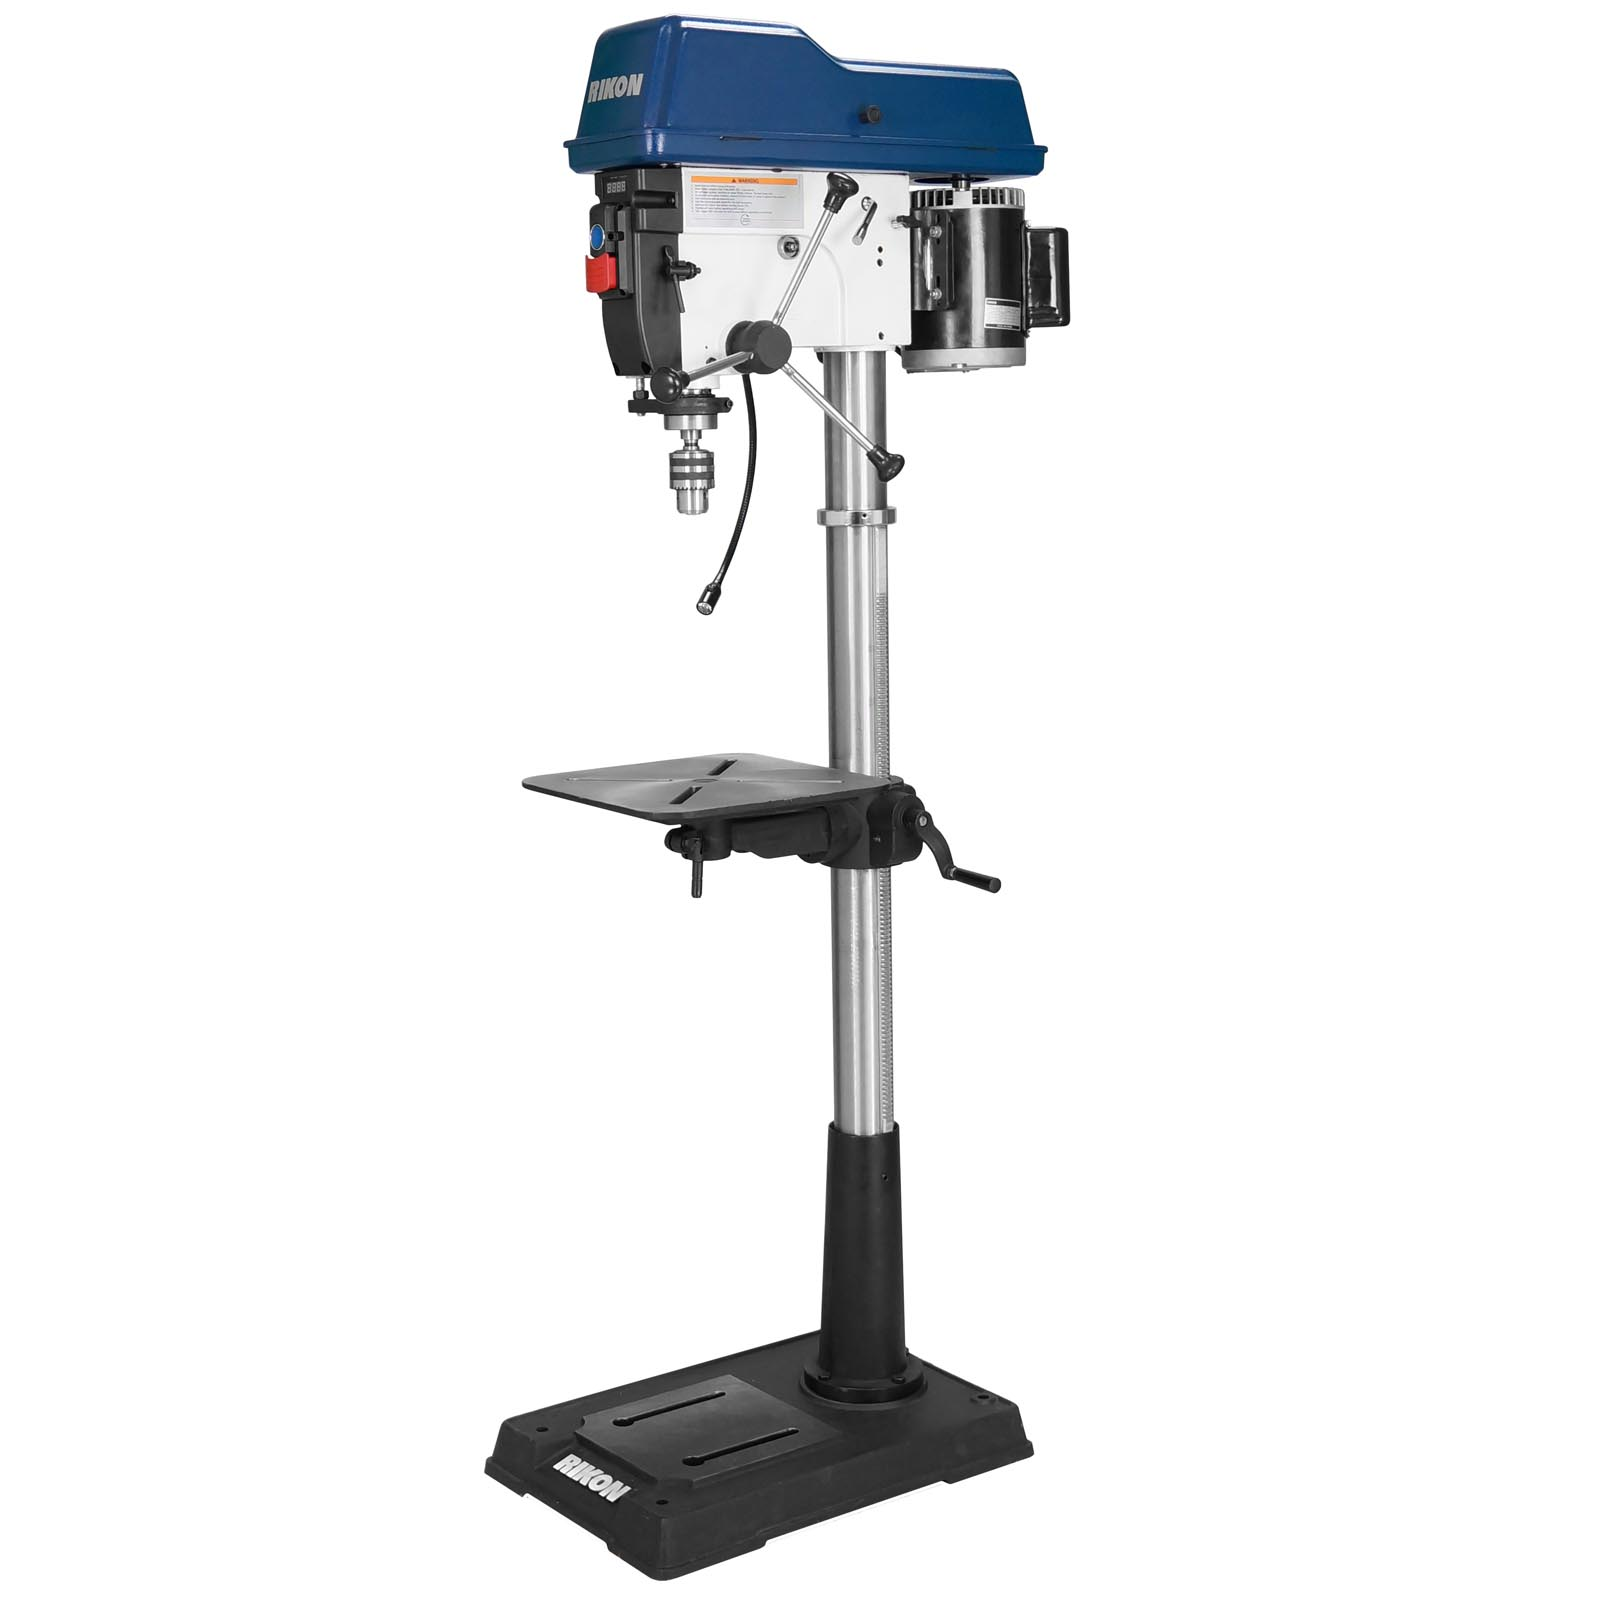 Rikon 17in 1 1 2 hp variable speed drill press from for 2 hp variable speed motor